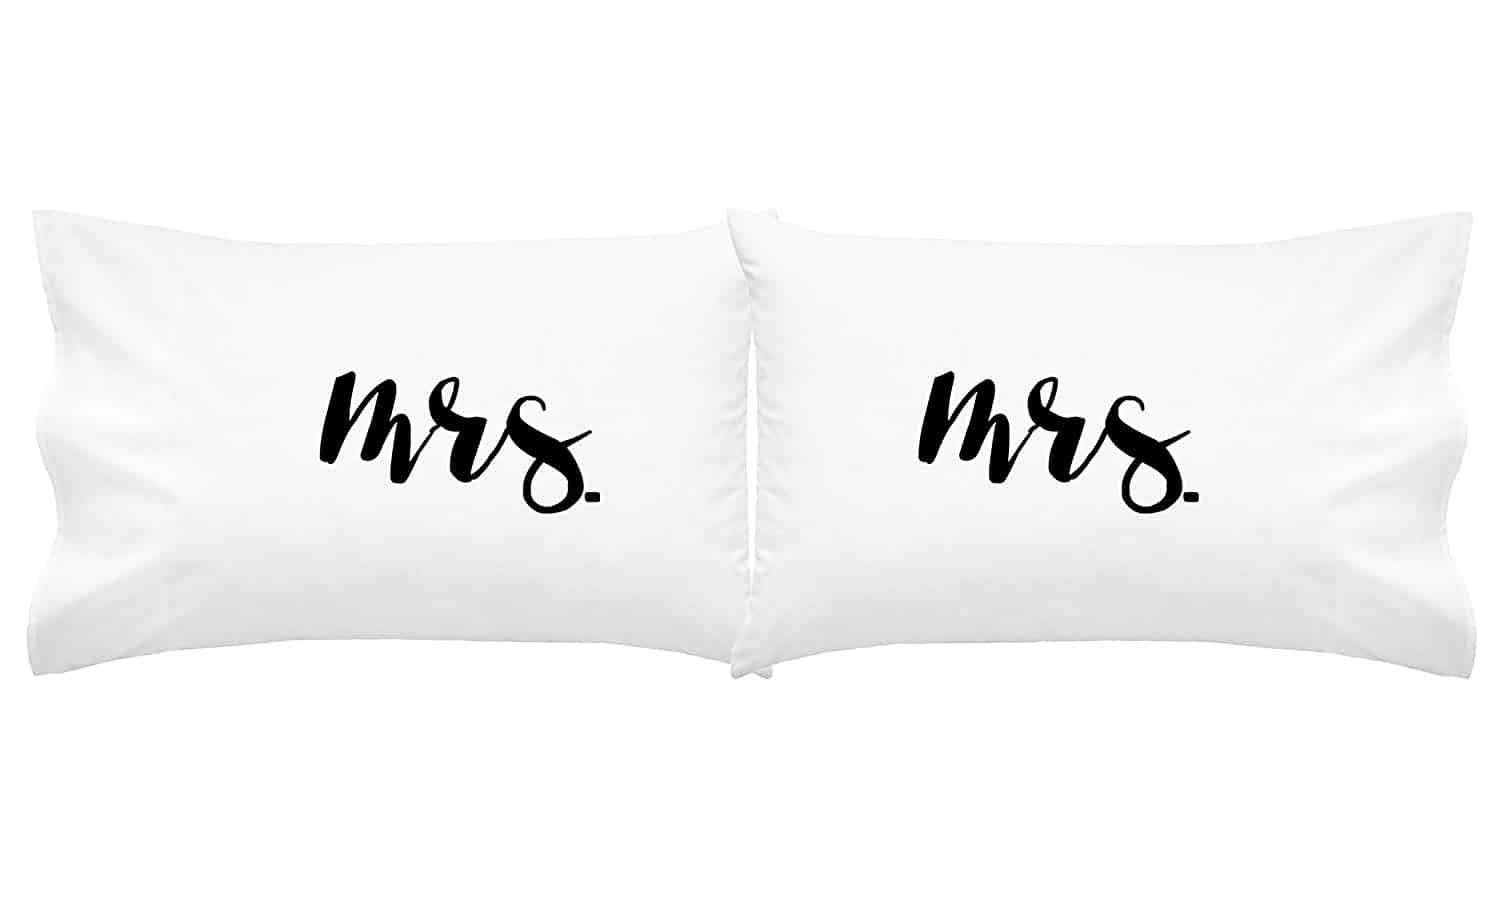 Couple Wedding Gifts: 15 Awesome Hers And Hers Gifts For Your Favorite Couple